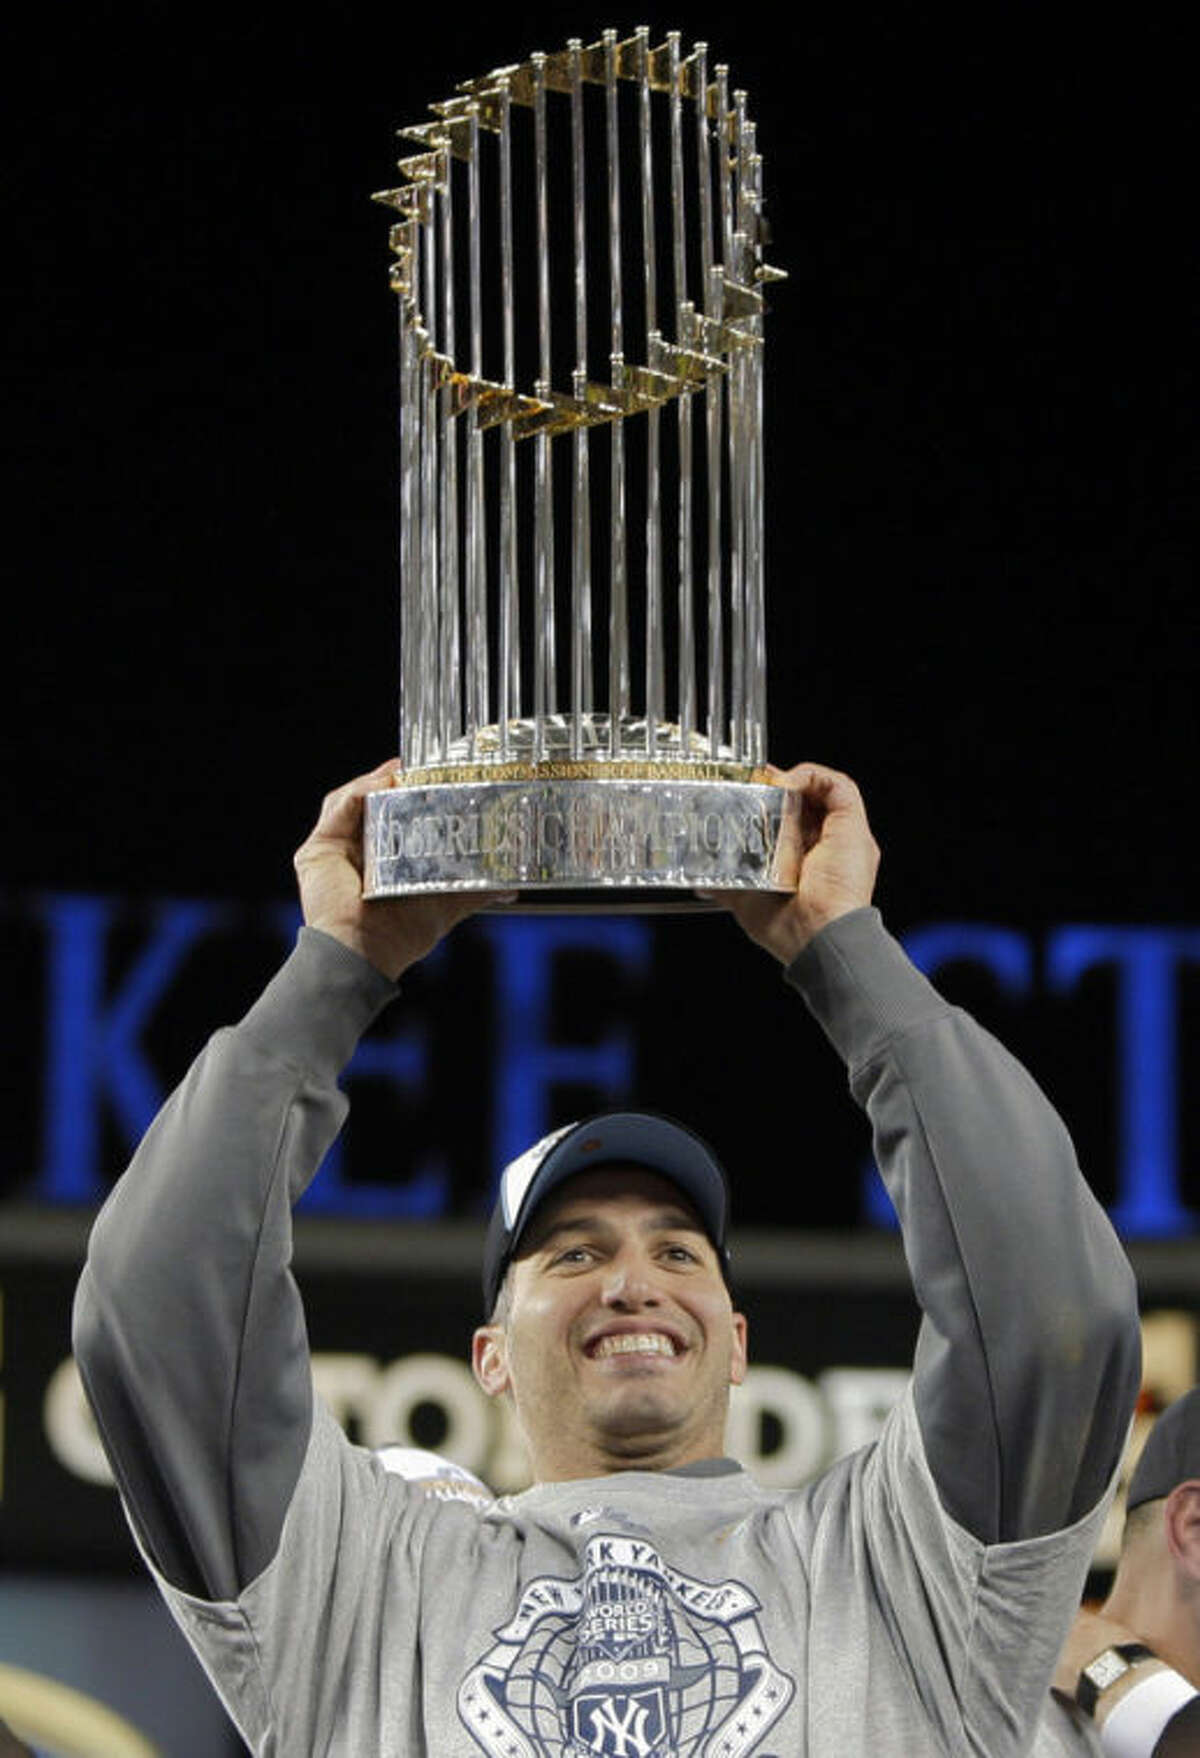 FILE - In this Nov. 4, 2009, file photo, New York Yankees' Andy Pettitte holds up the championship trophy after Game 6 of baseball's World Series against the Philadelphia Phillies in New York. Pettitte is retiring from baseball at the conclusion of the season, the Yankees announced on Friday, Sept. 20, 2013. (AP Photo/Elise Amendola, File)